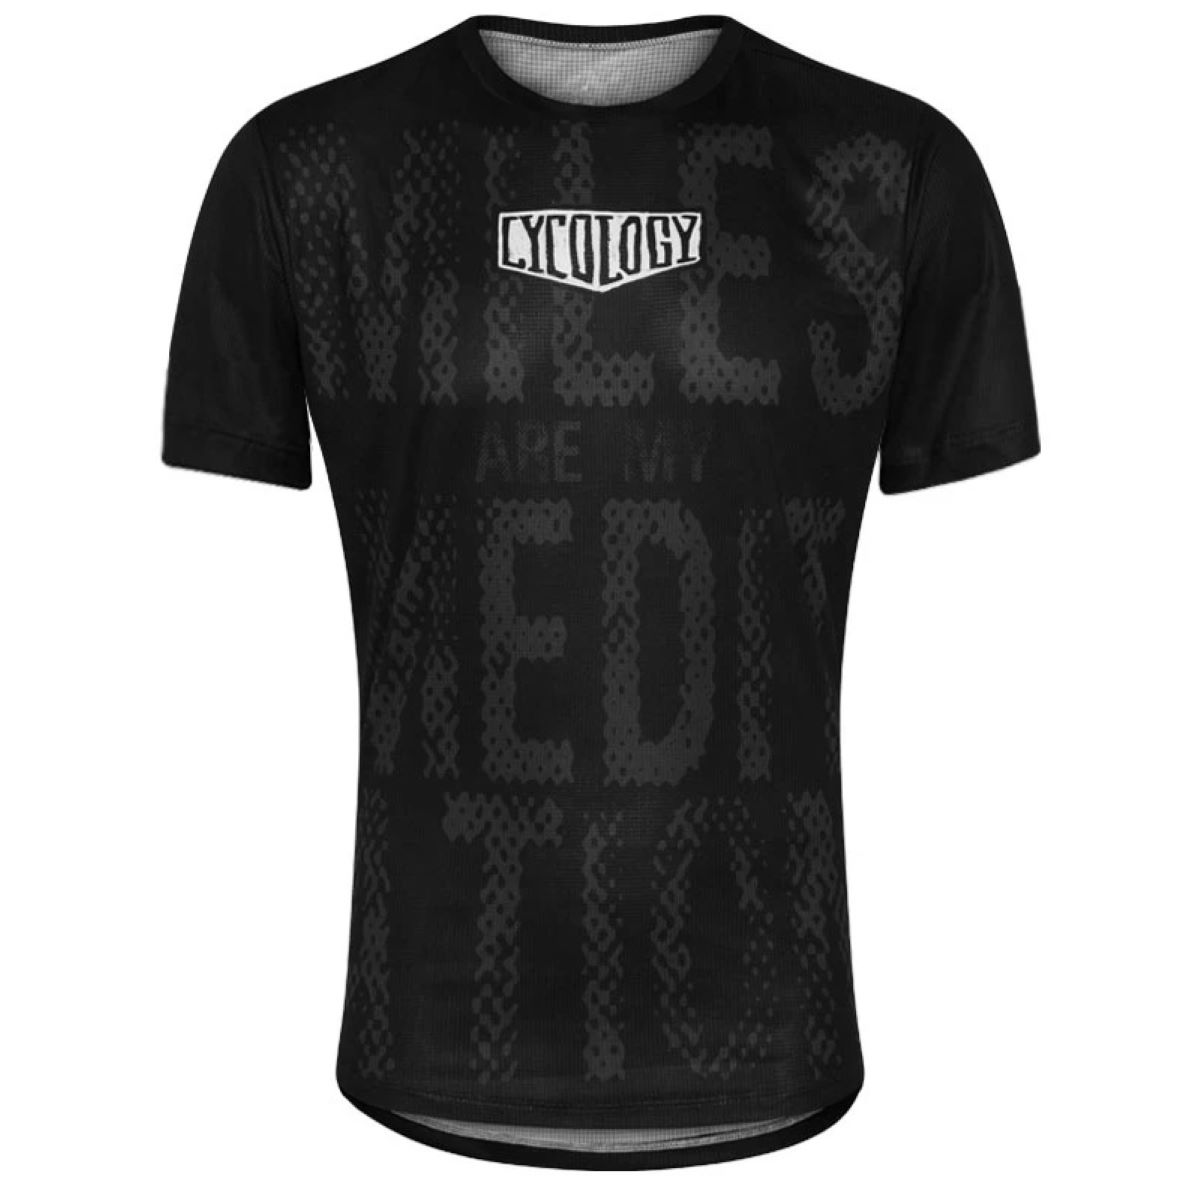 Cycology Miles Are My Meditation Mens Technical T-shirt - L Black